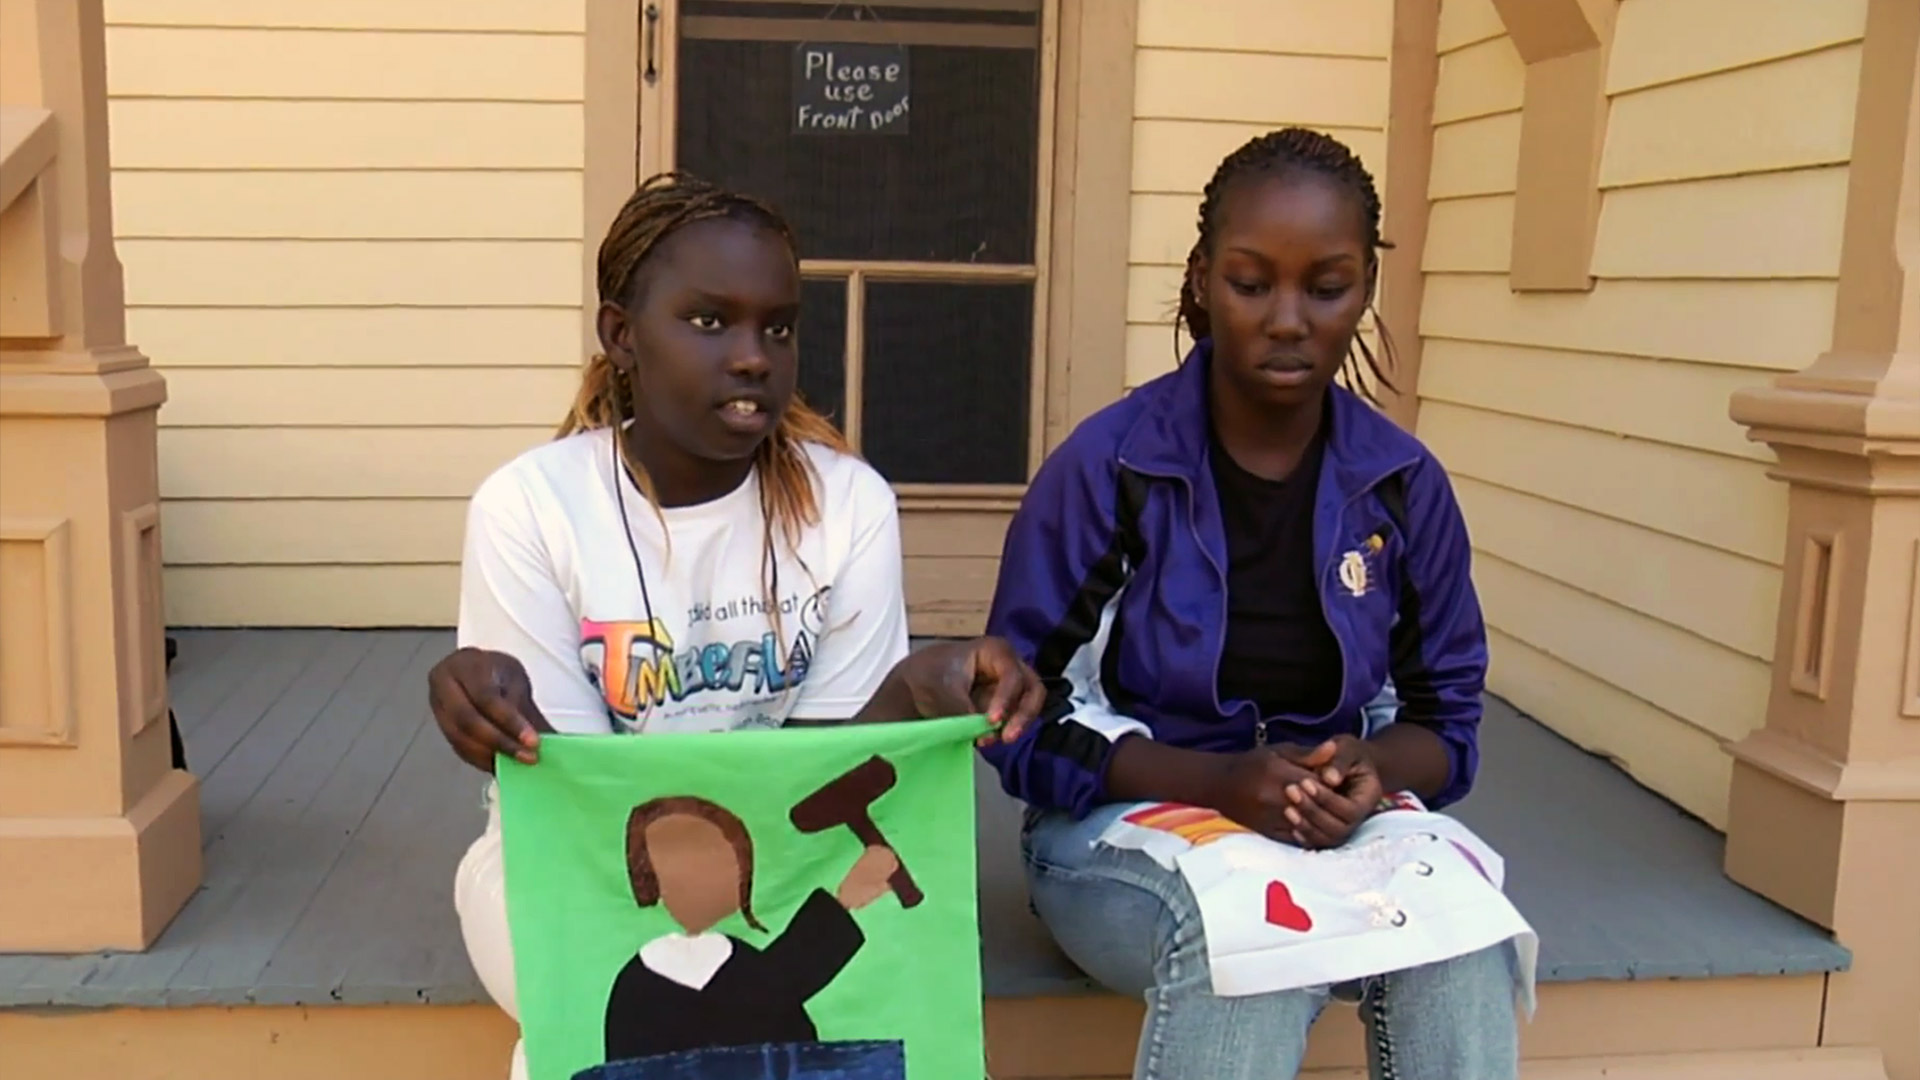 Nyarieka & Neesha explain their Dreams blocks at the Stuhr Museum. From the documentary The Quilted Conscience